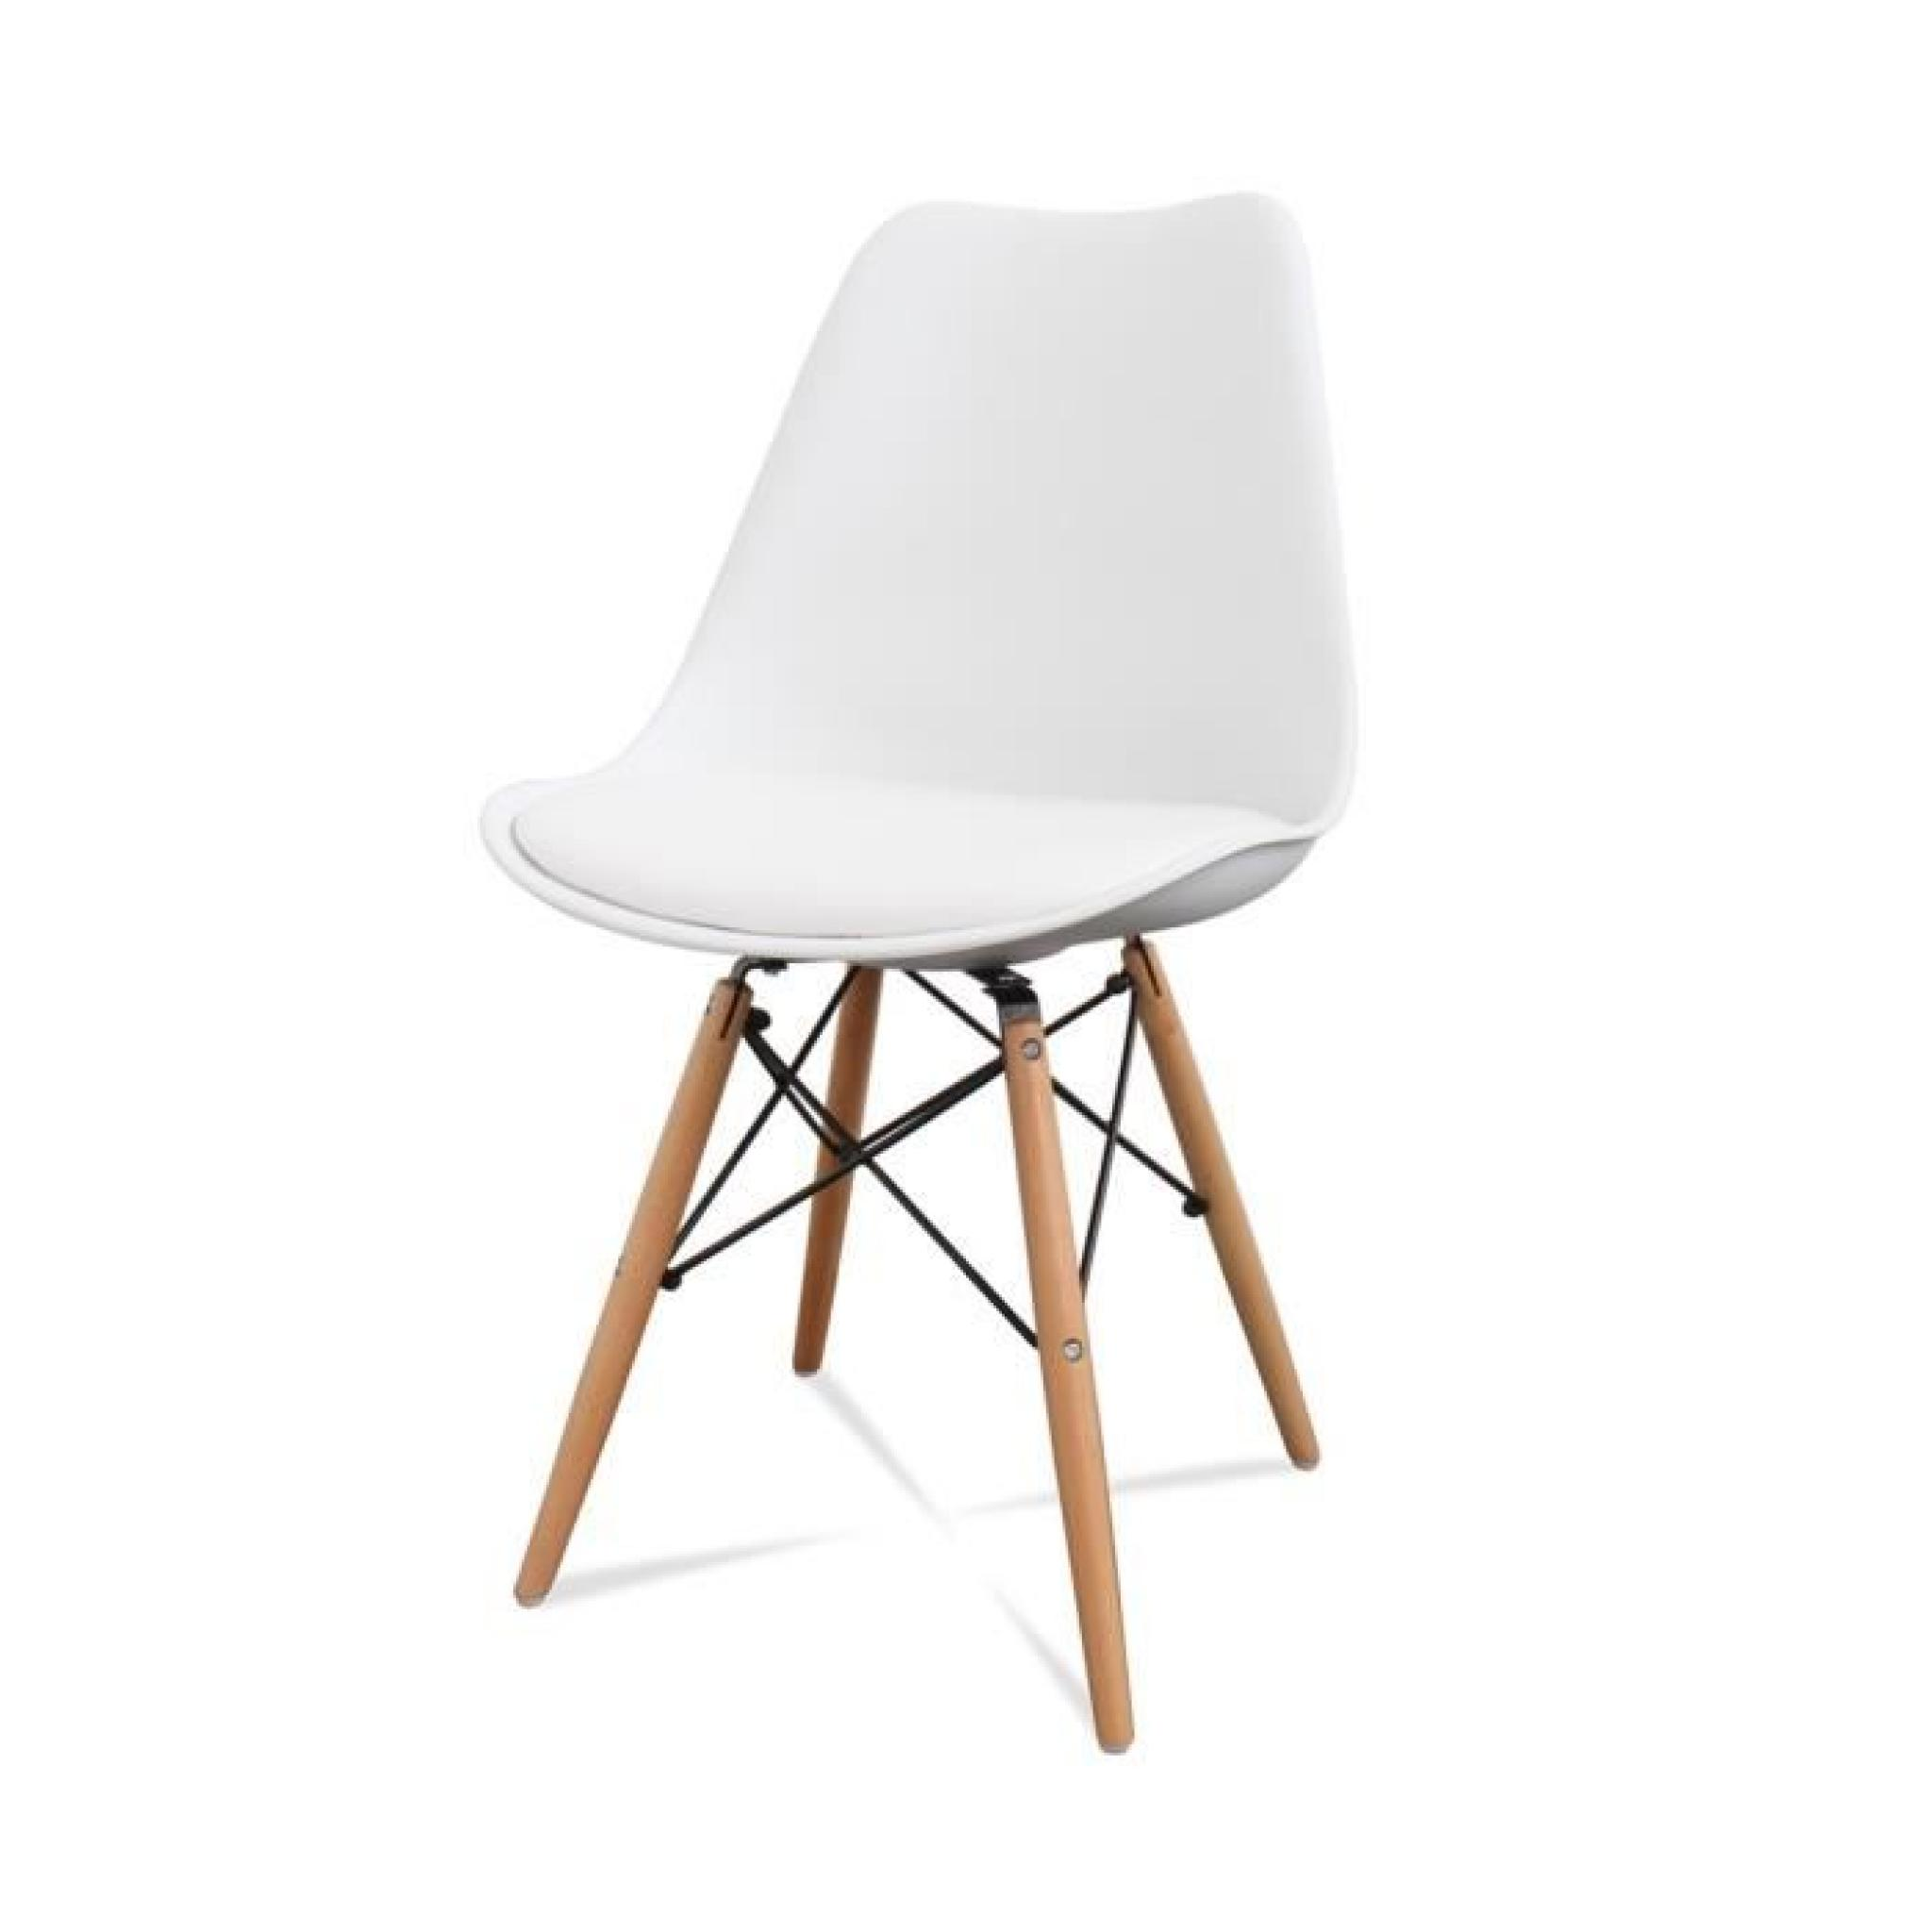 Lot de chaise design pas cher maison design for Chaise design dsw blanche blanc